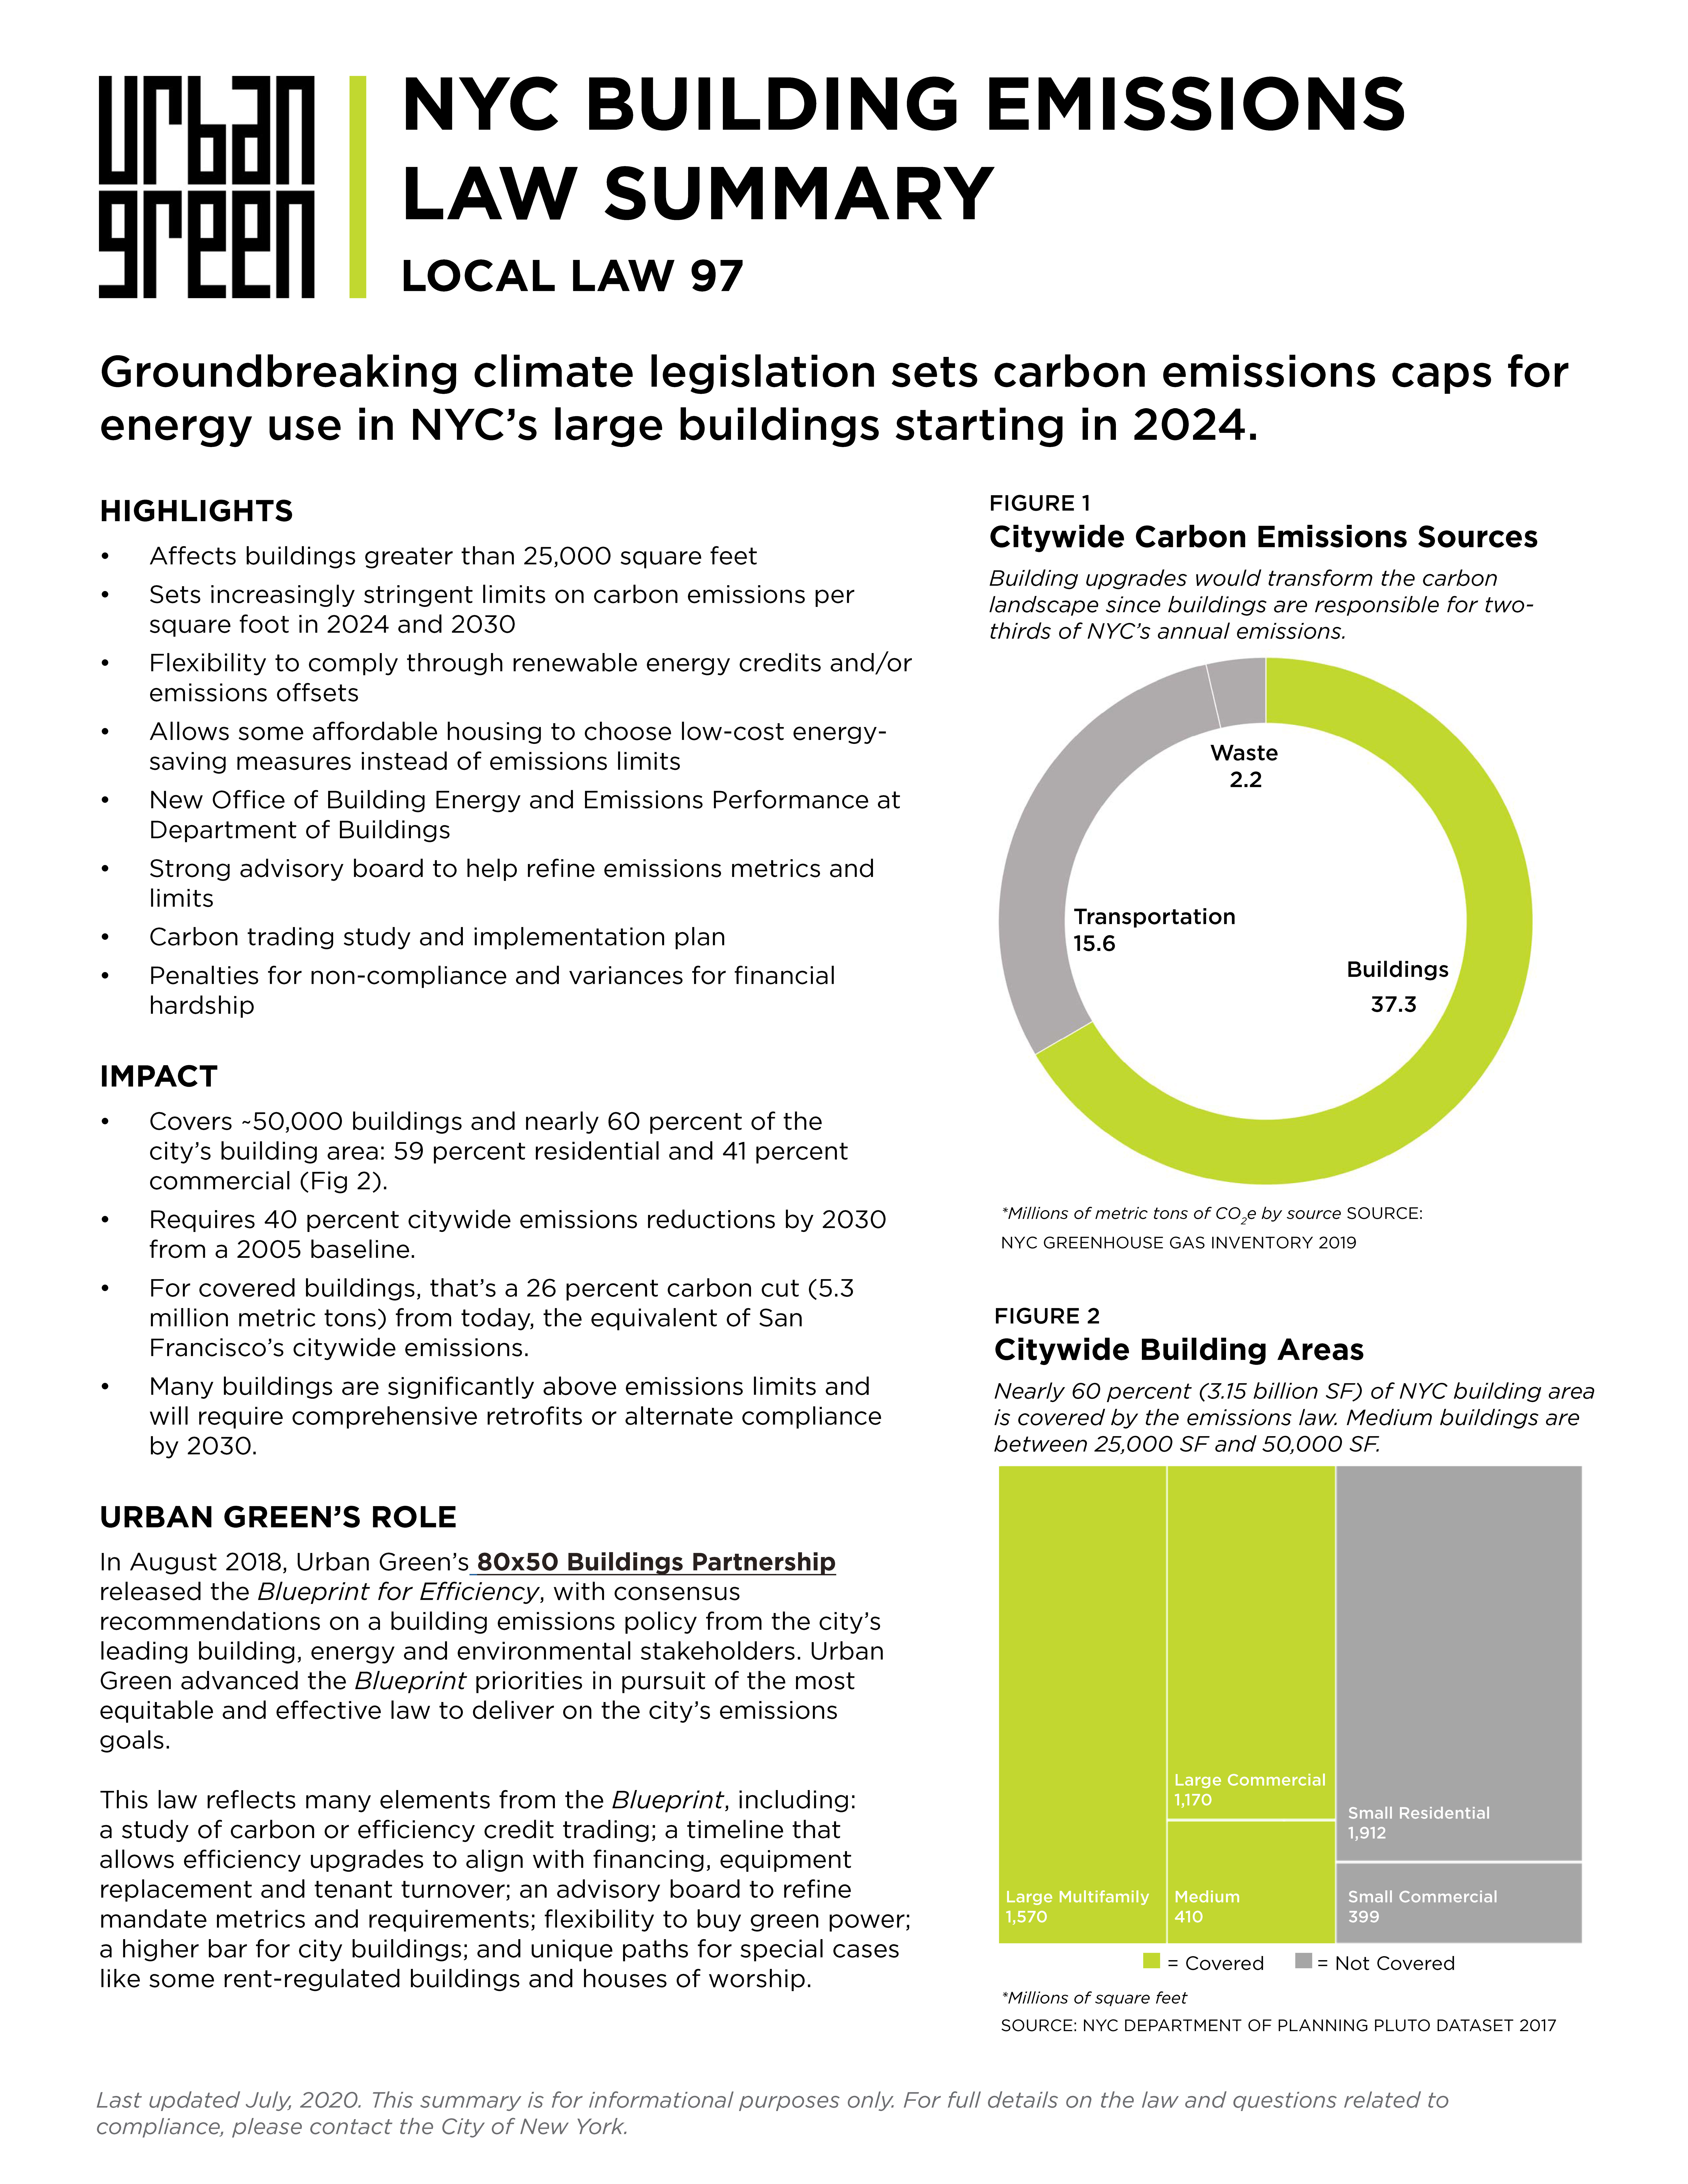 Emissions Bill Summary Sheet